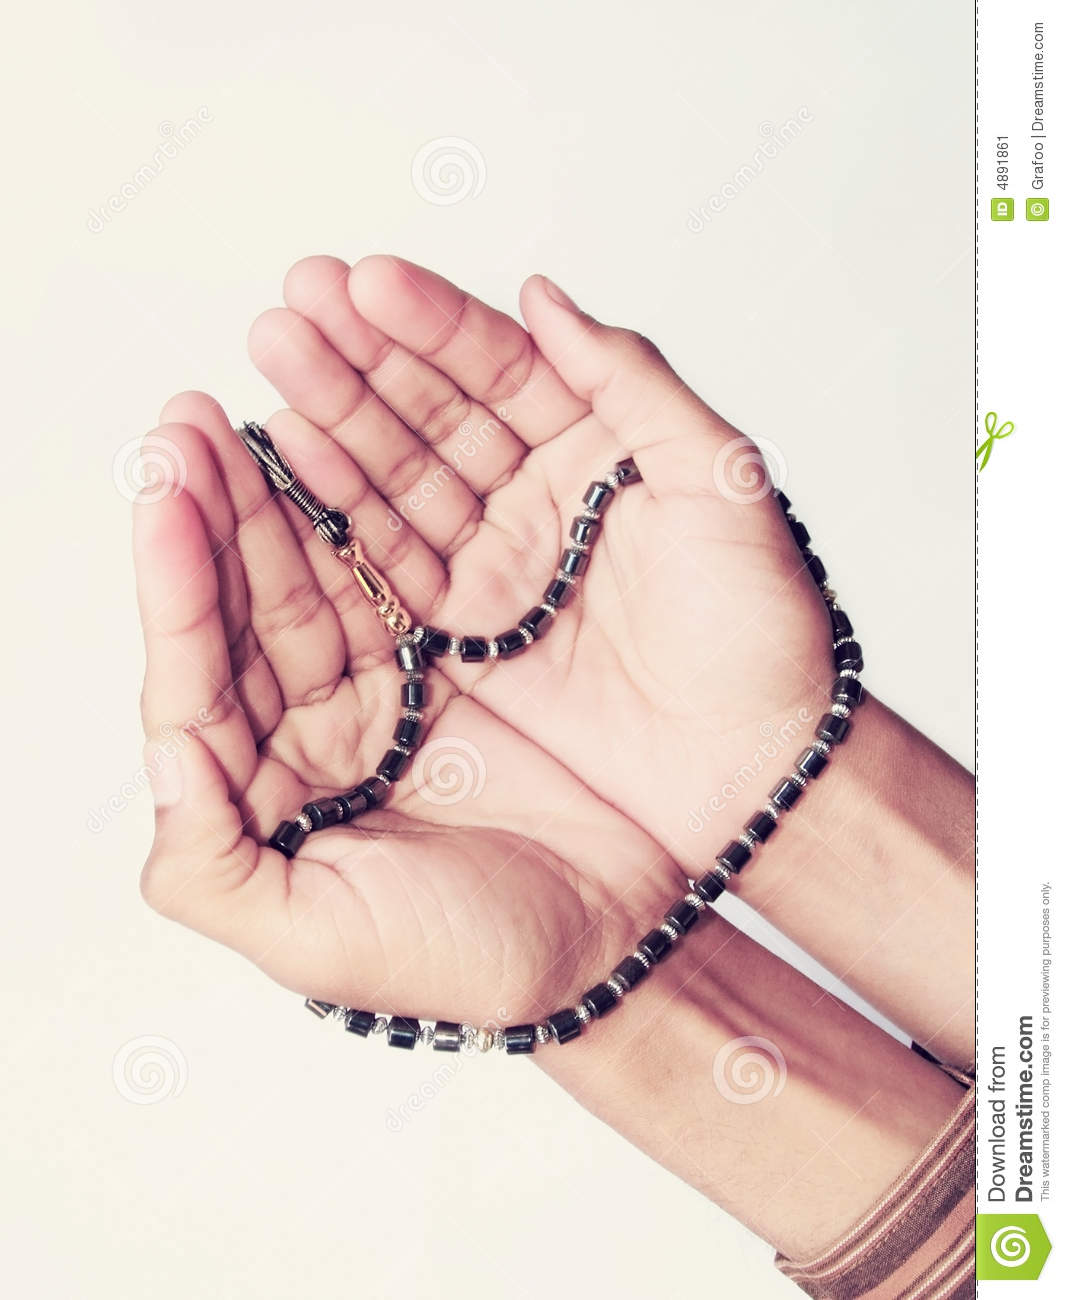 Hands With Muslim Prayer Beads Stock Image - Image: 4891861